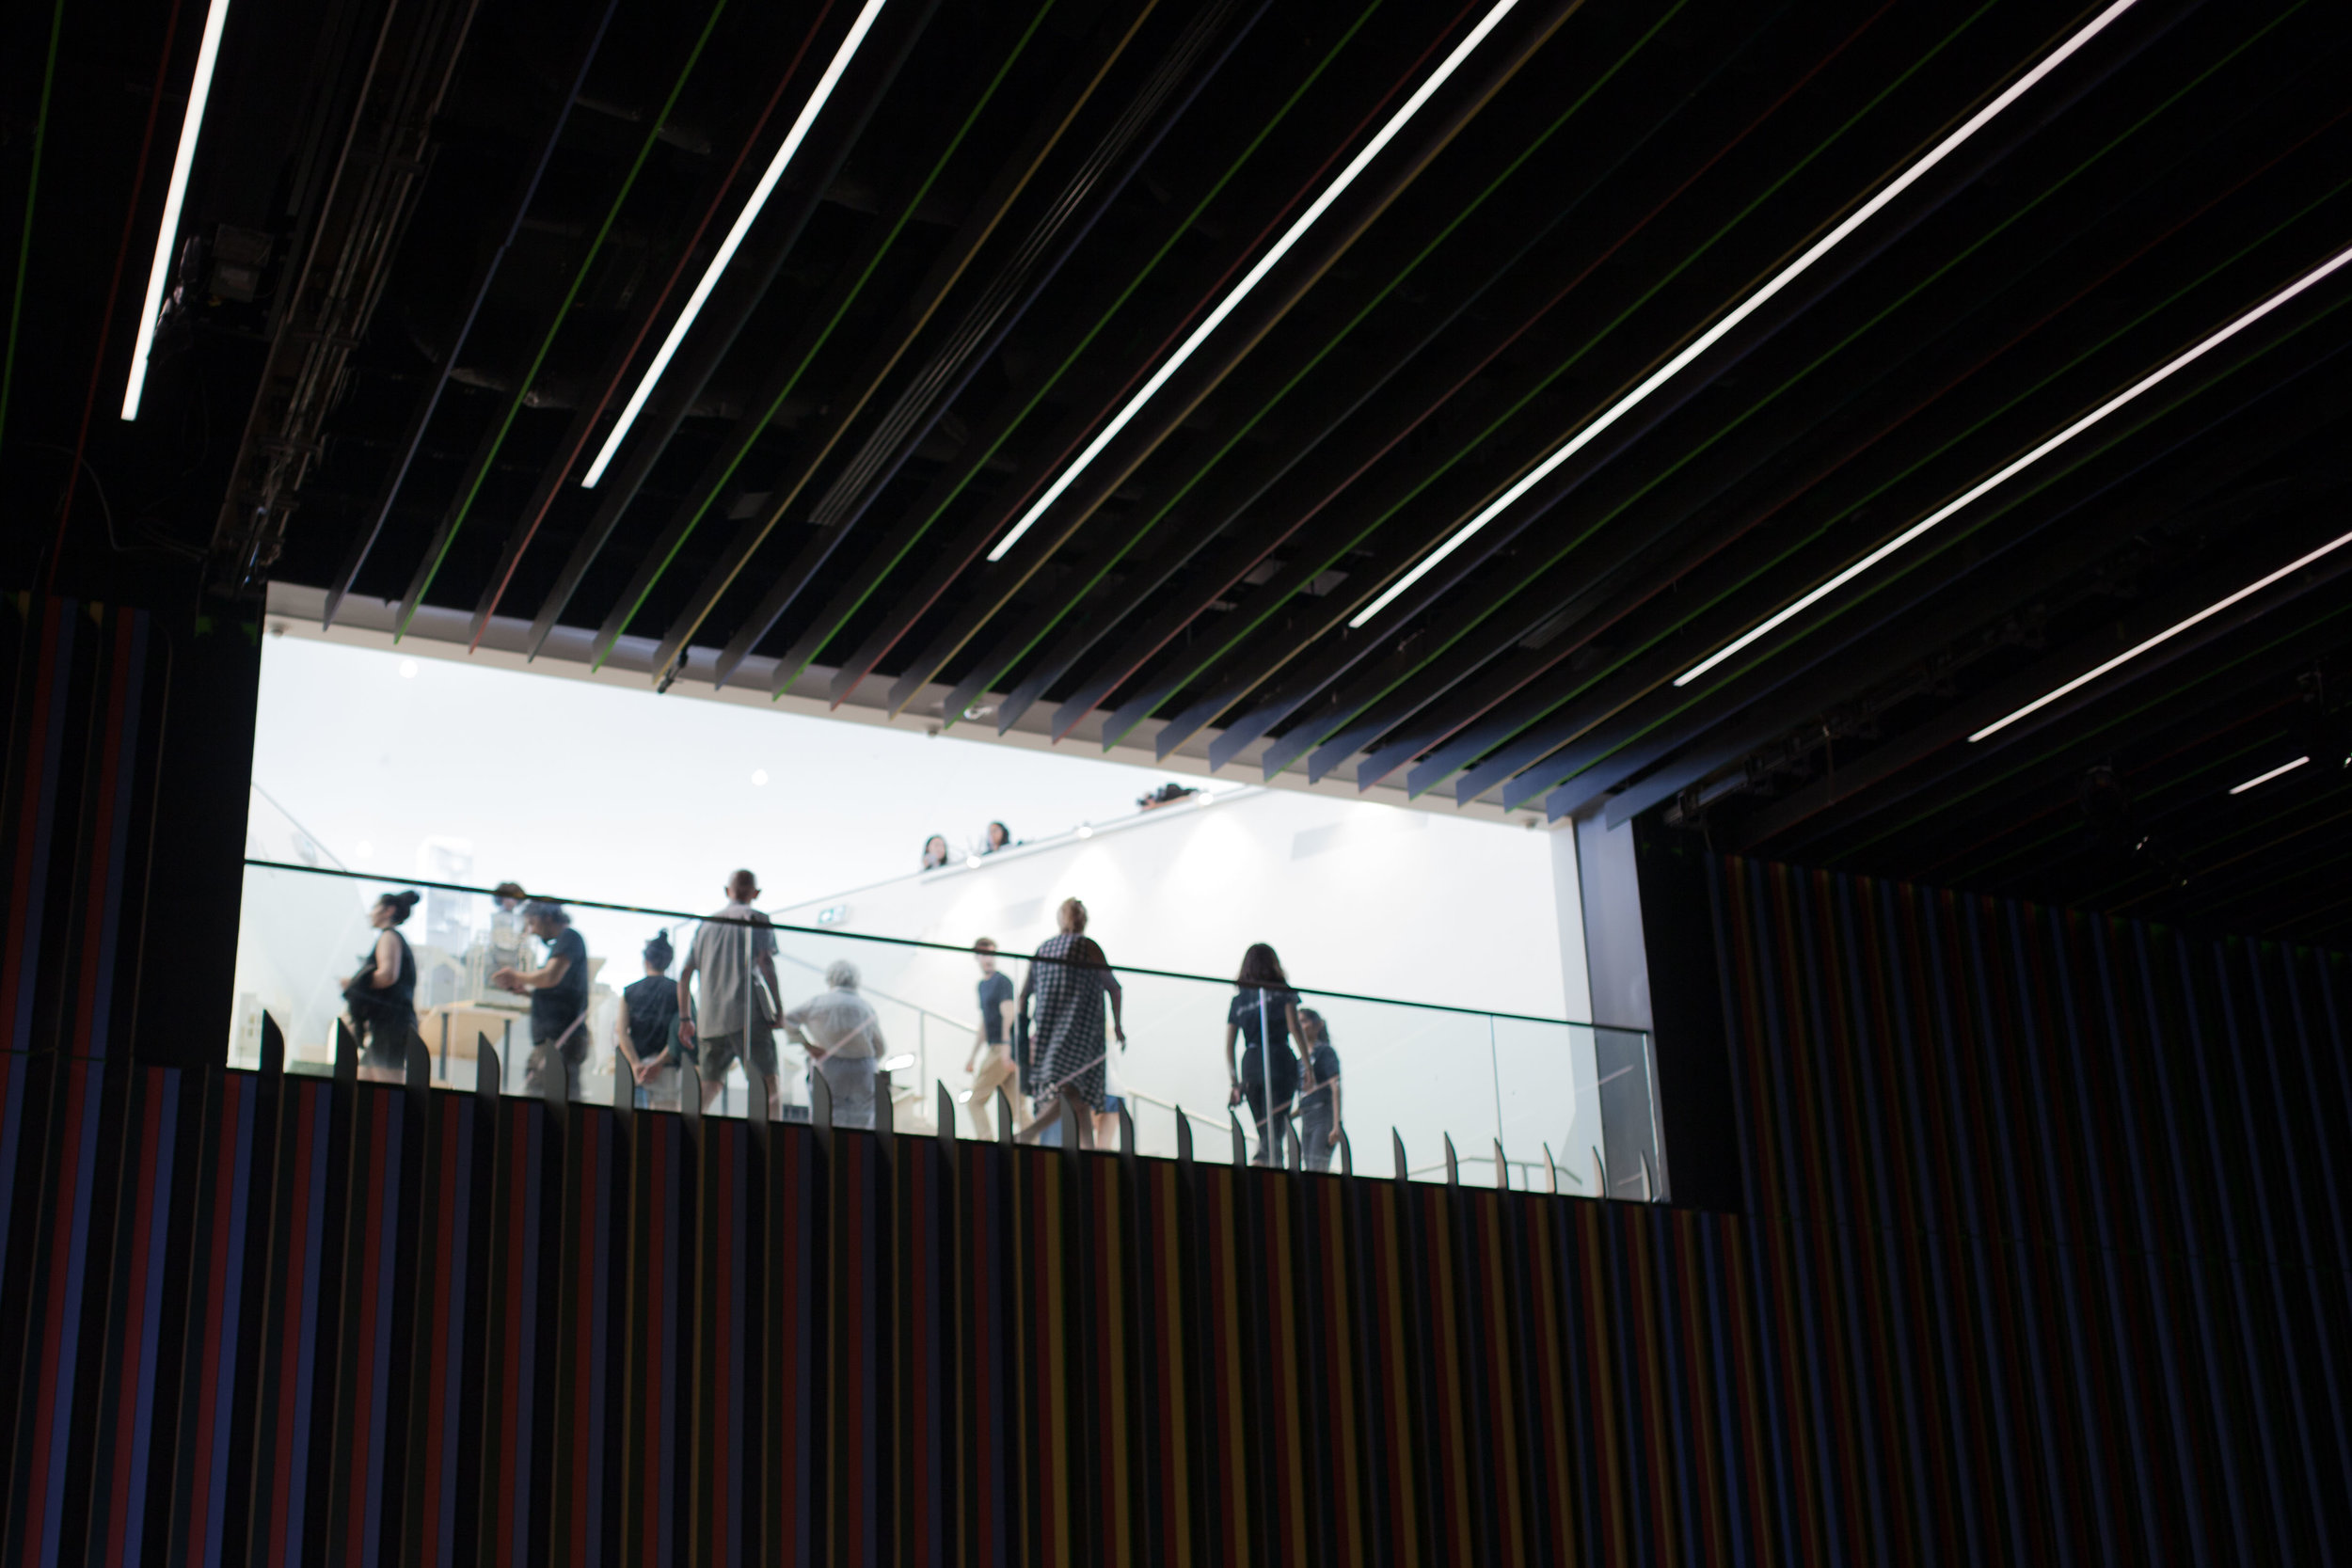 There is a viewing area that allows spectators to look into the auditorium from the upper level of the building.